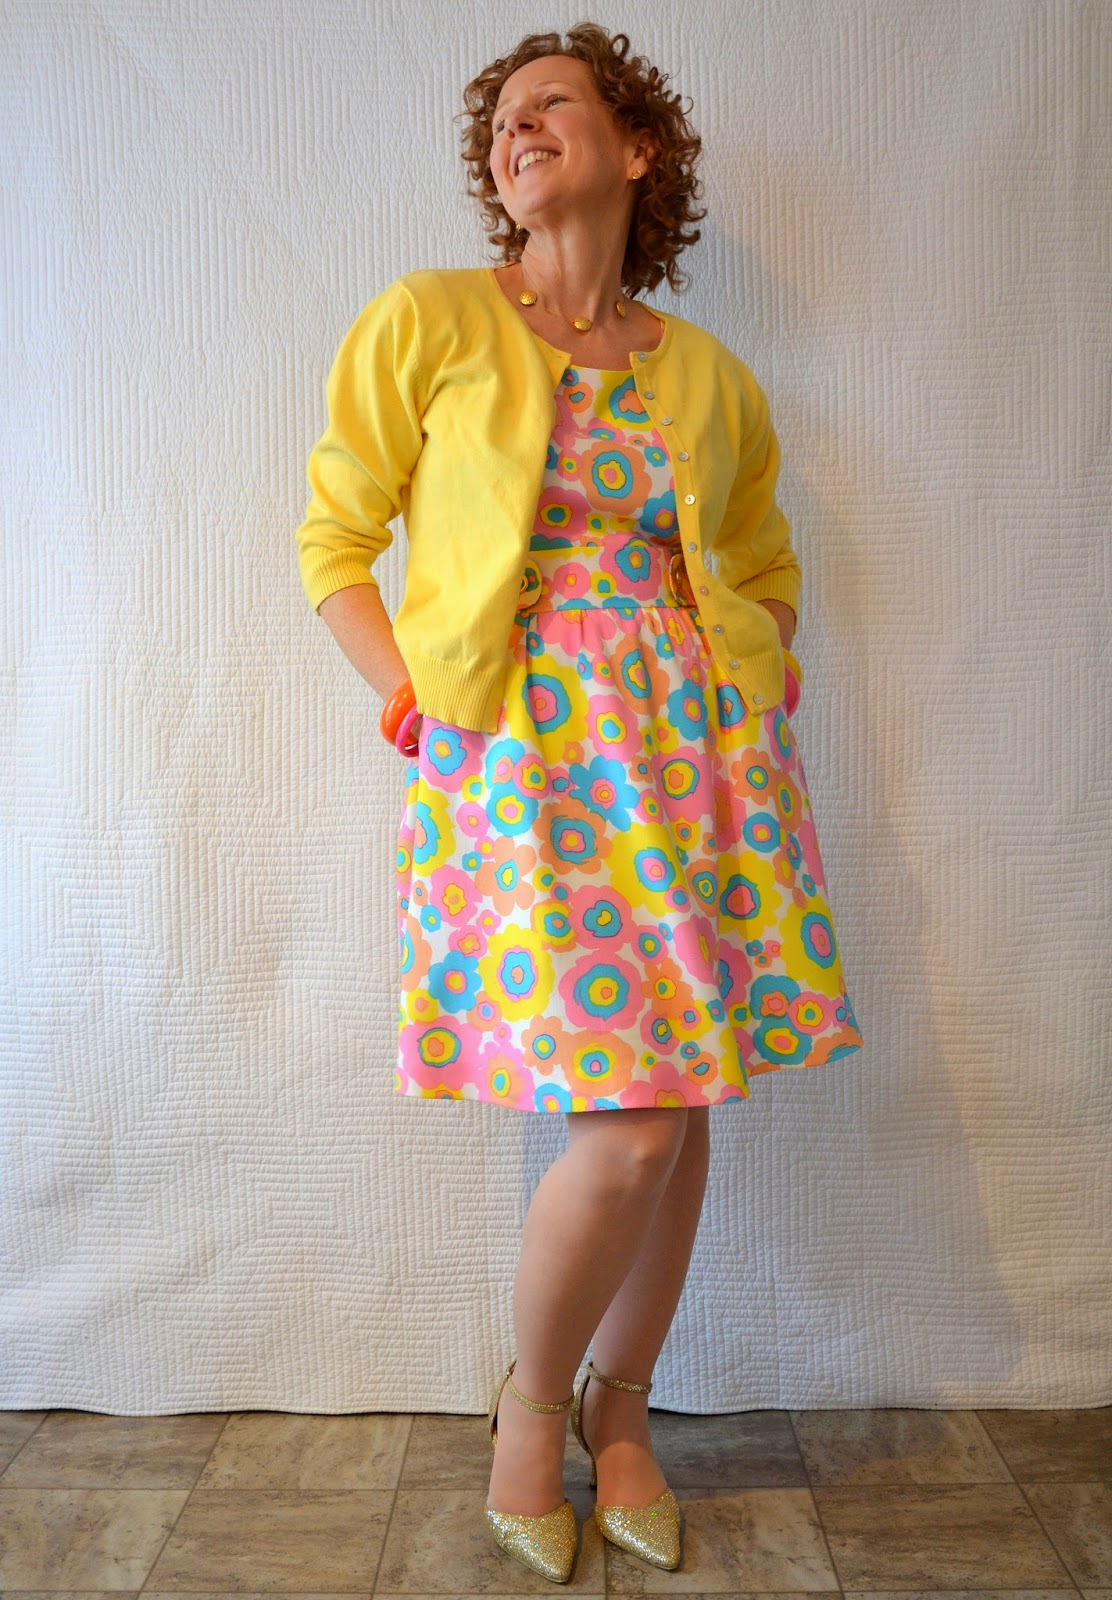 A Colourful Canvas, Cynthia Rowley 1873, New Look 6799, Simplicity 2256